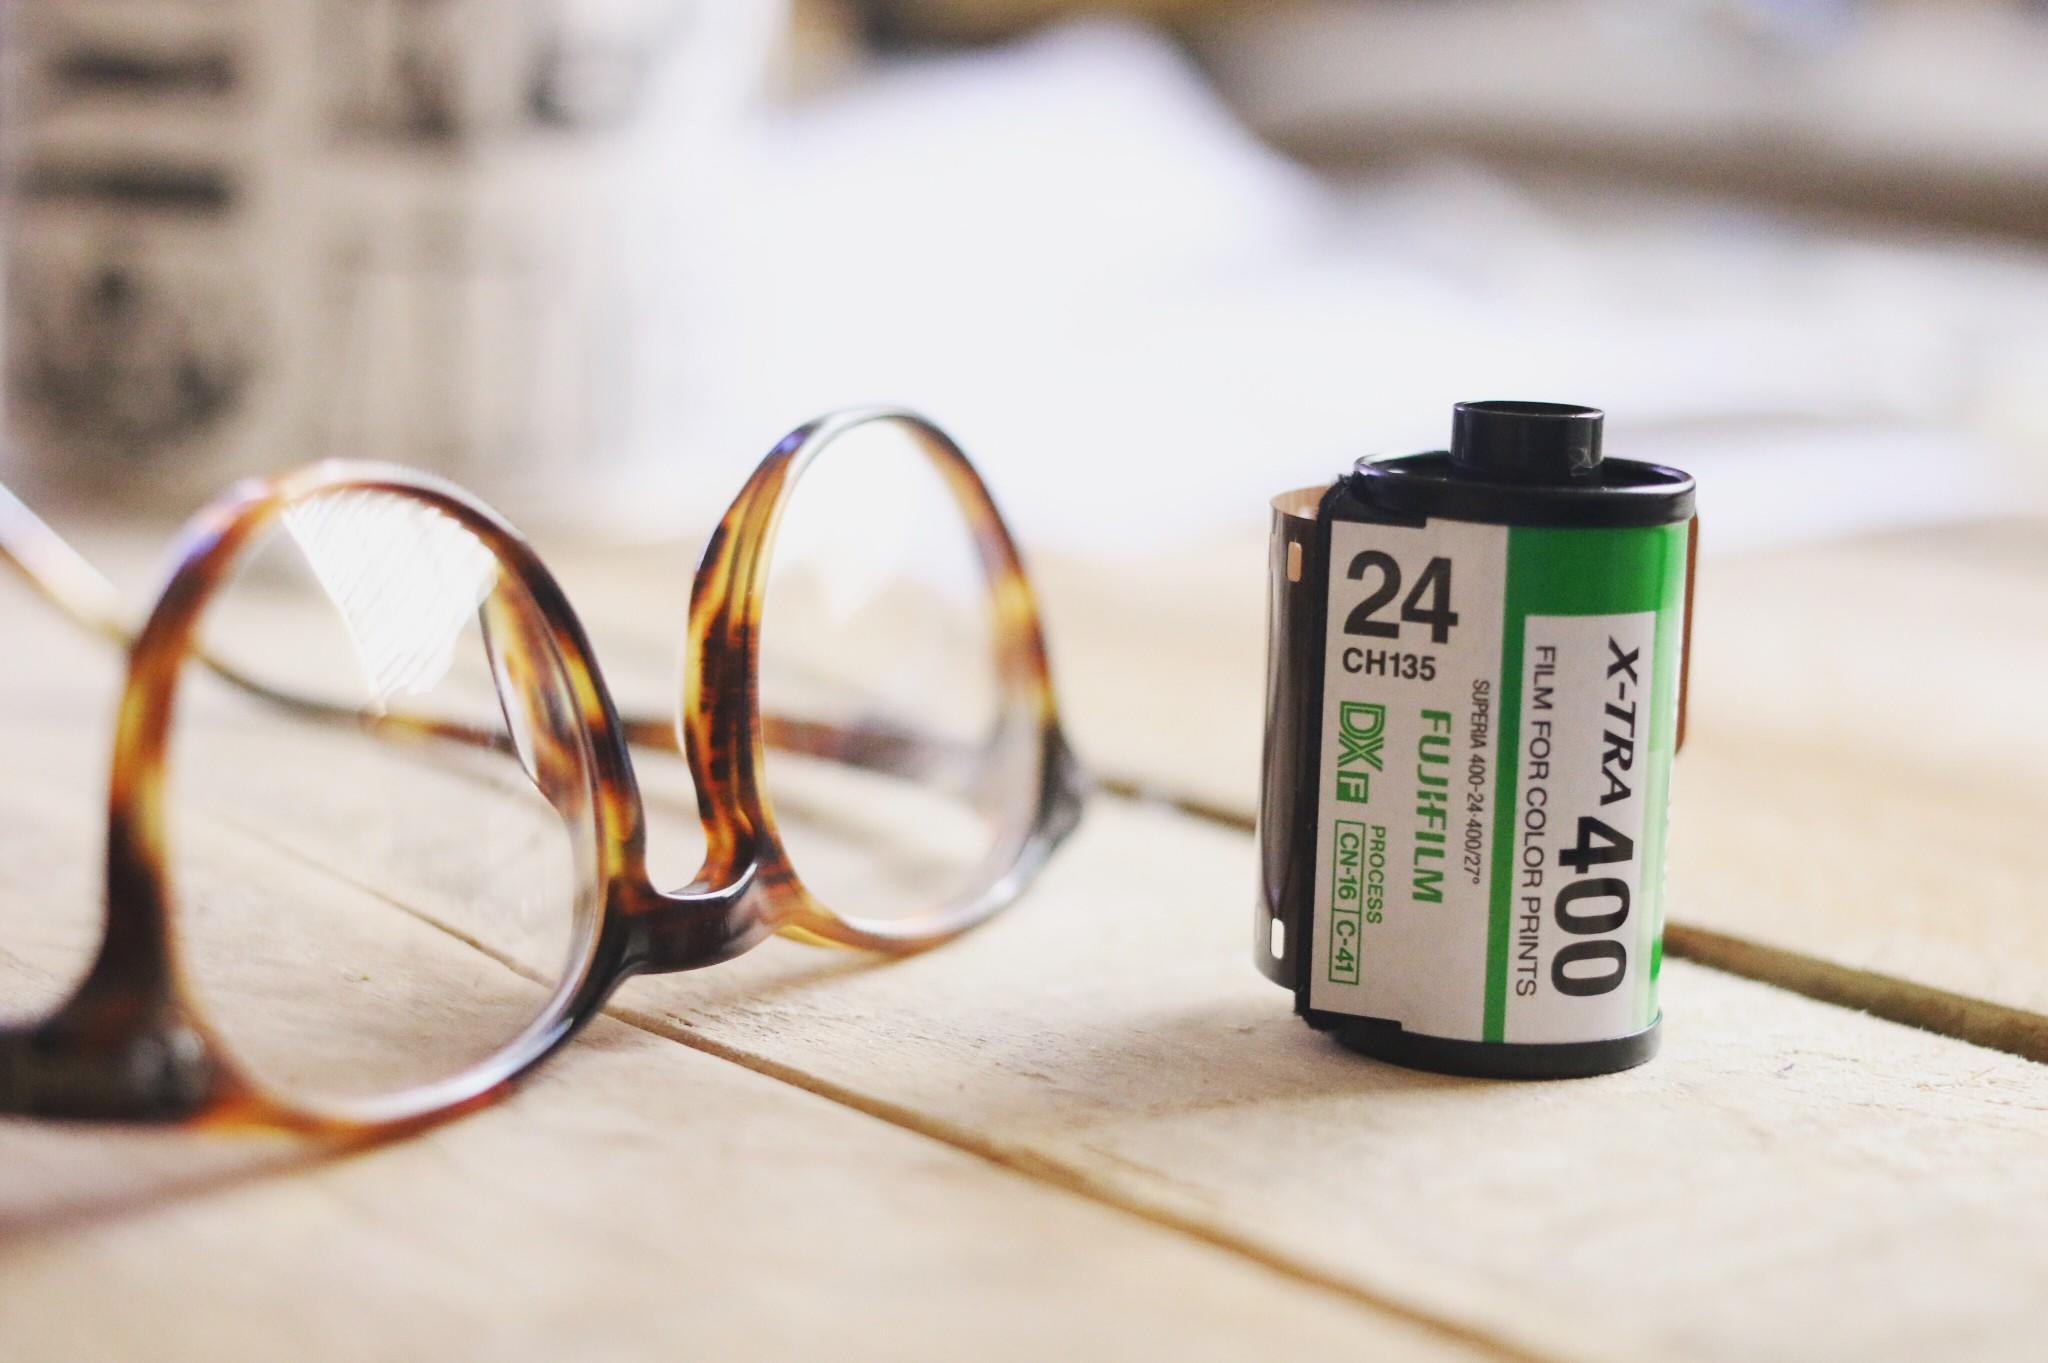 fuji 400 film cannister next to glasses on wood table